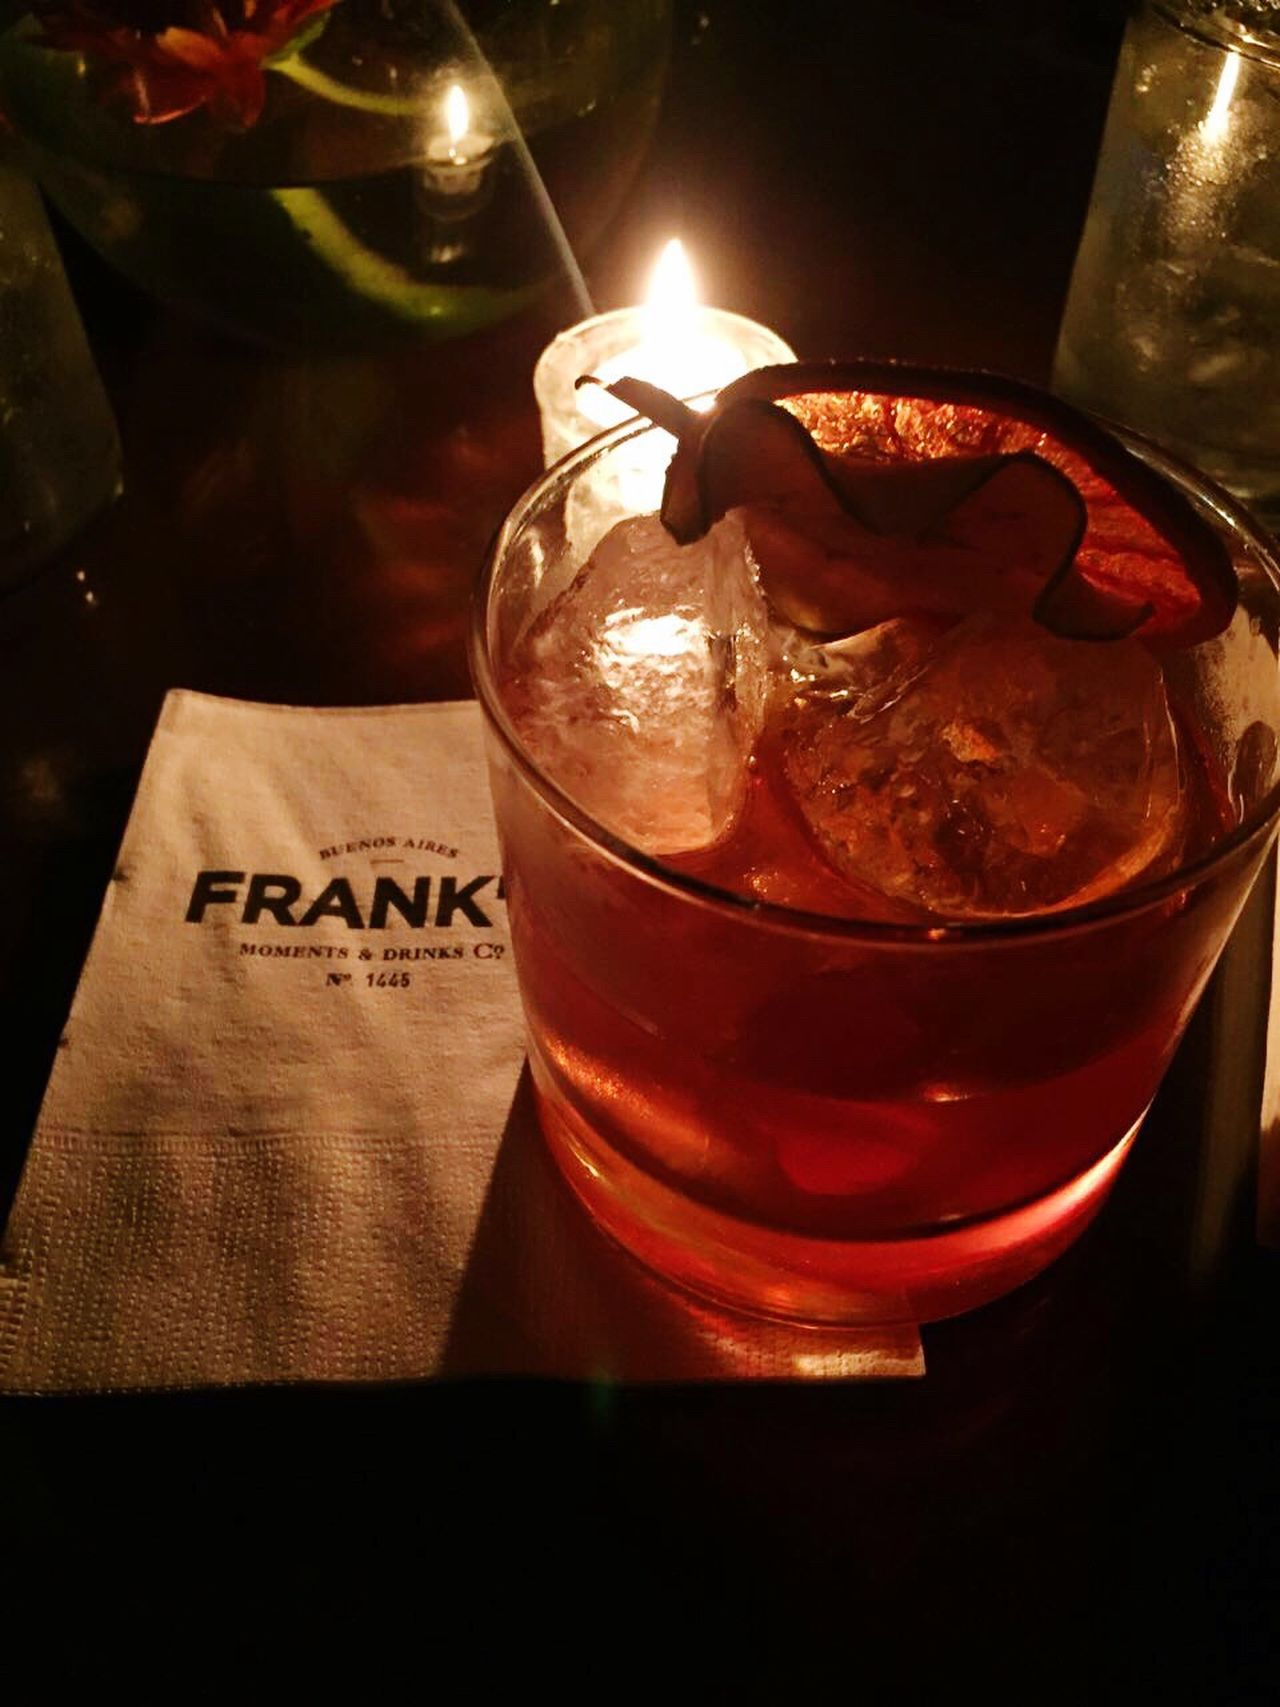 Bar Franksbar Franksinatra Love Happy Photography Coctails Argentina EyeEm Best Shots IPhone Buenos Aires, Argentina  IPhoneography Eye4photography  ShotOniPhone6 Original Experiences Urban Good Night Goodnight ♡ Food Drink Food And Drink Moments Old-fashioned Oldfashioned Cocktails